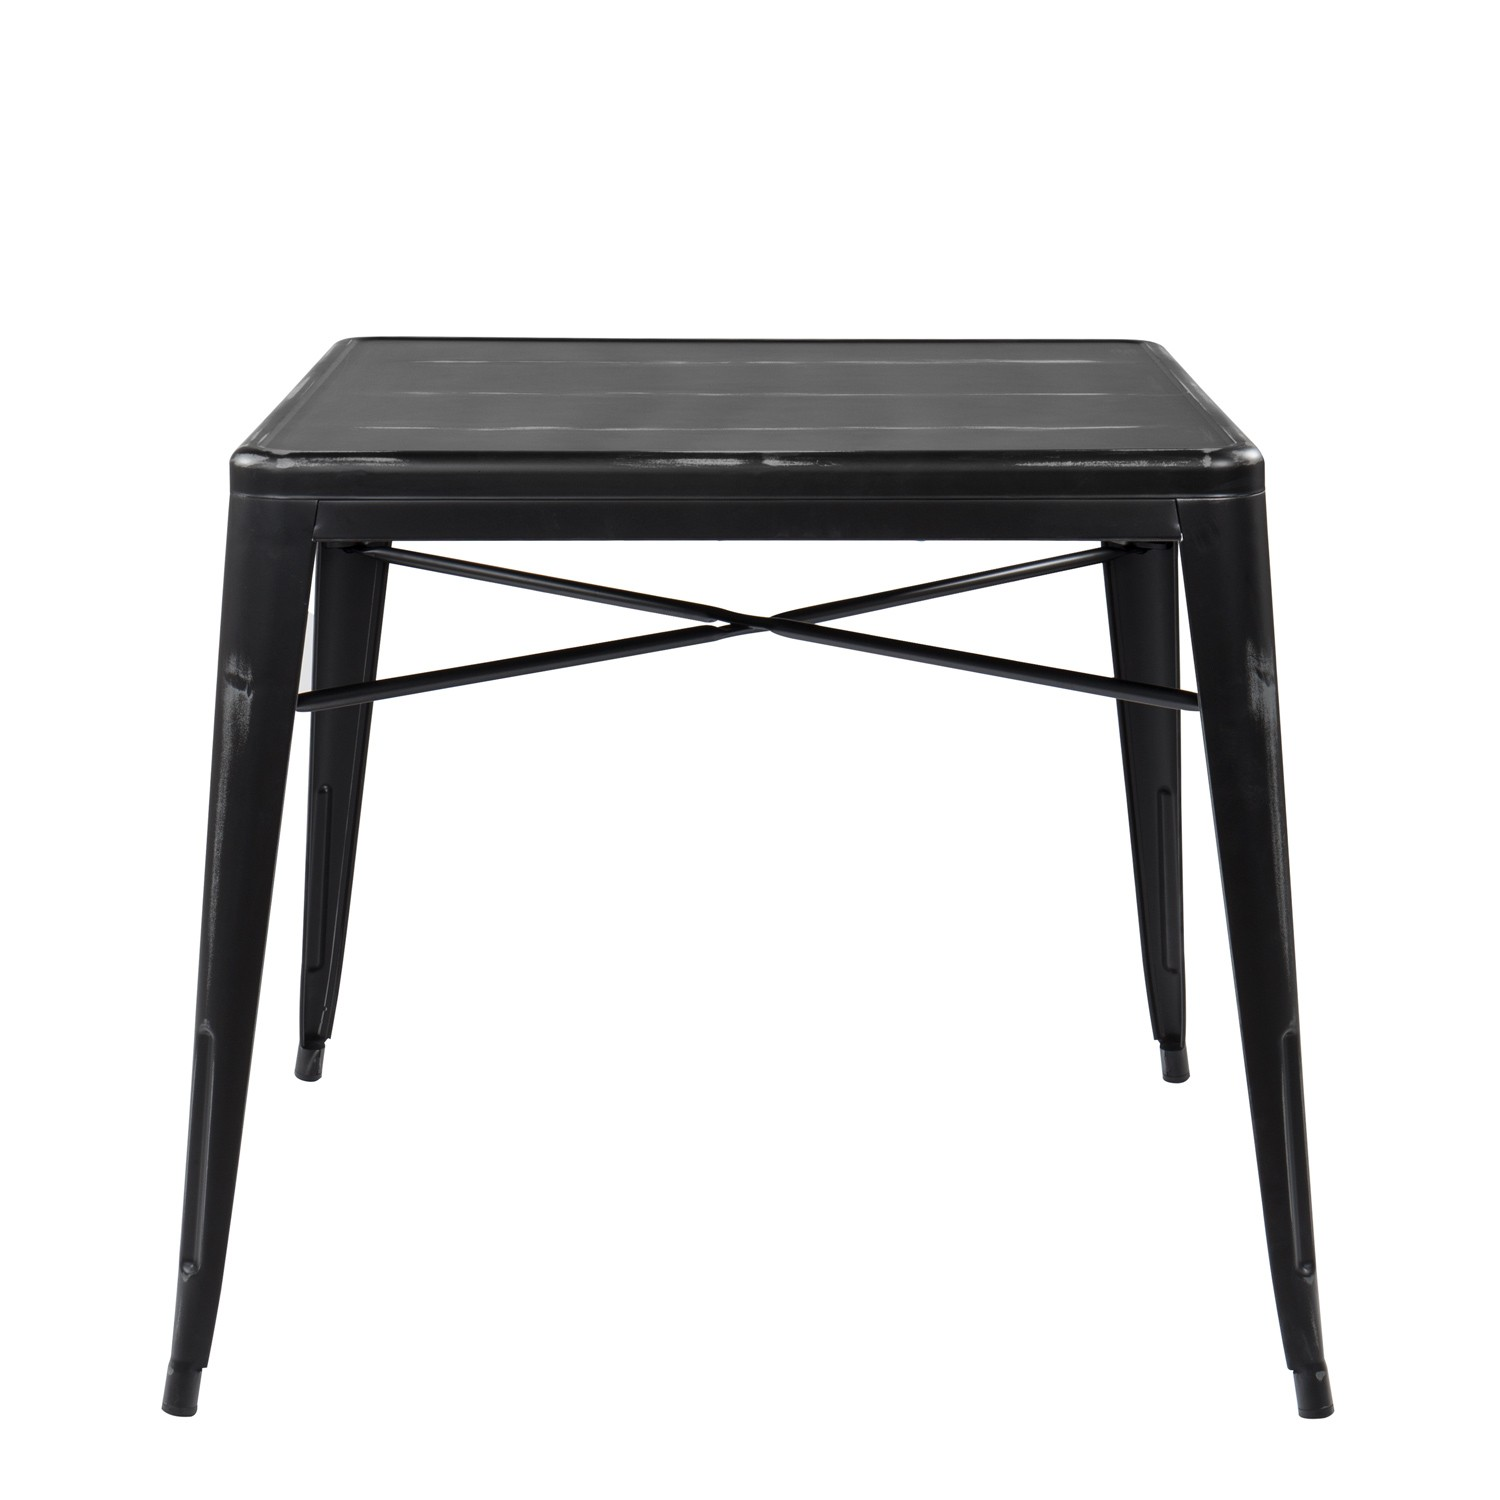 table lix x vintage 80x80 sklum france. Black Bedroom Furniture Sets. Home Design Ideas